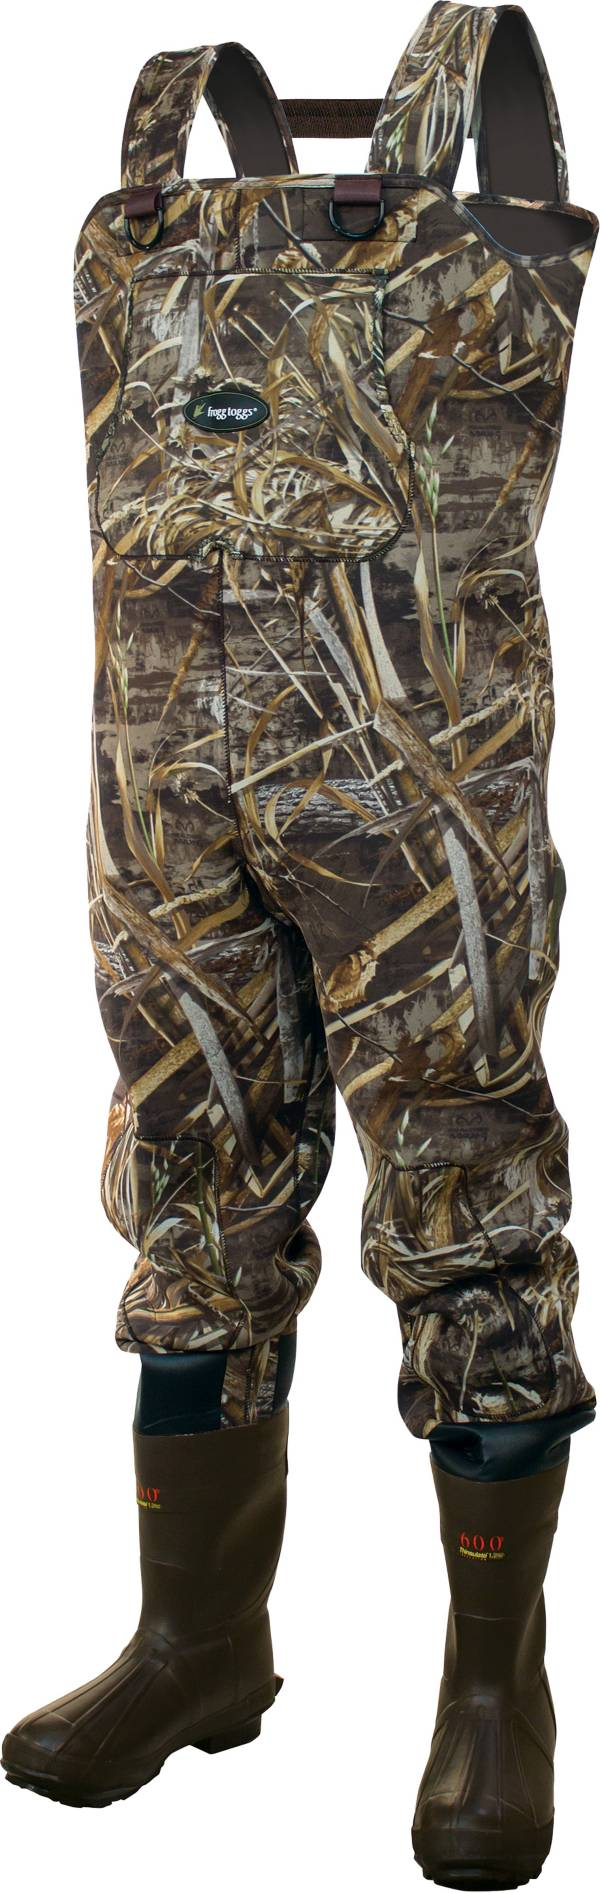 frogg toggs Men's Amphib 3.5 Neoprene Camo Bootfoot Waders product image